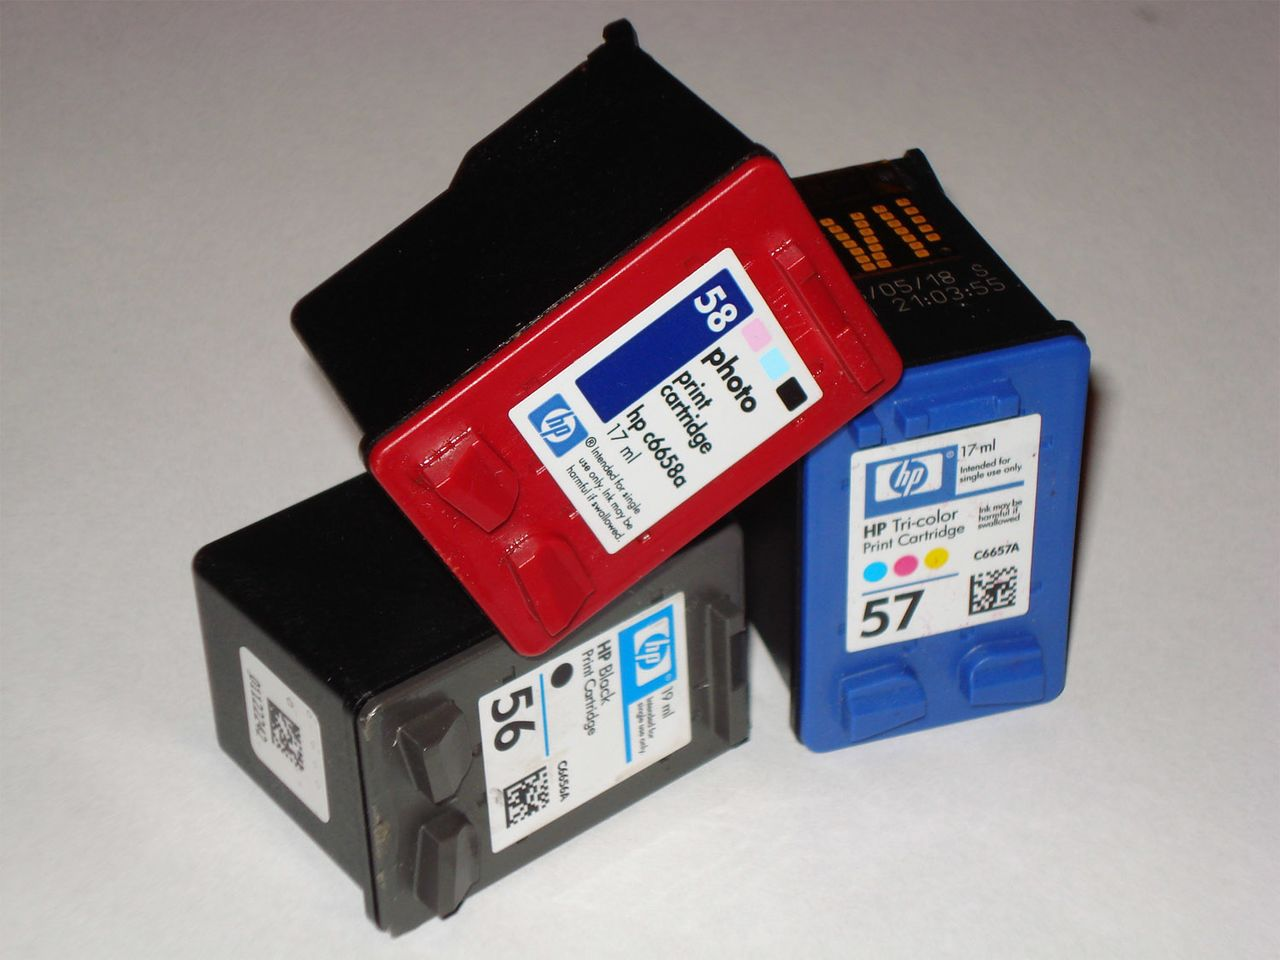 counterfeit printer cartridges